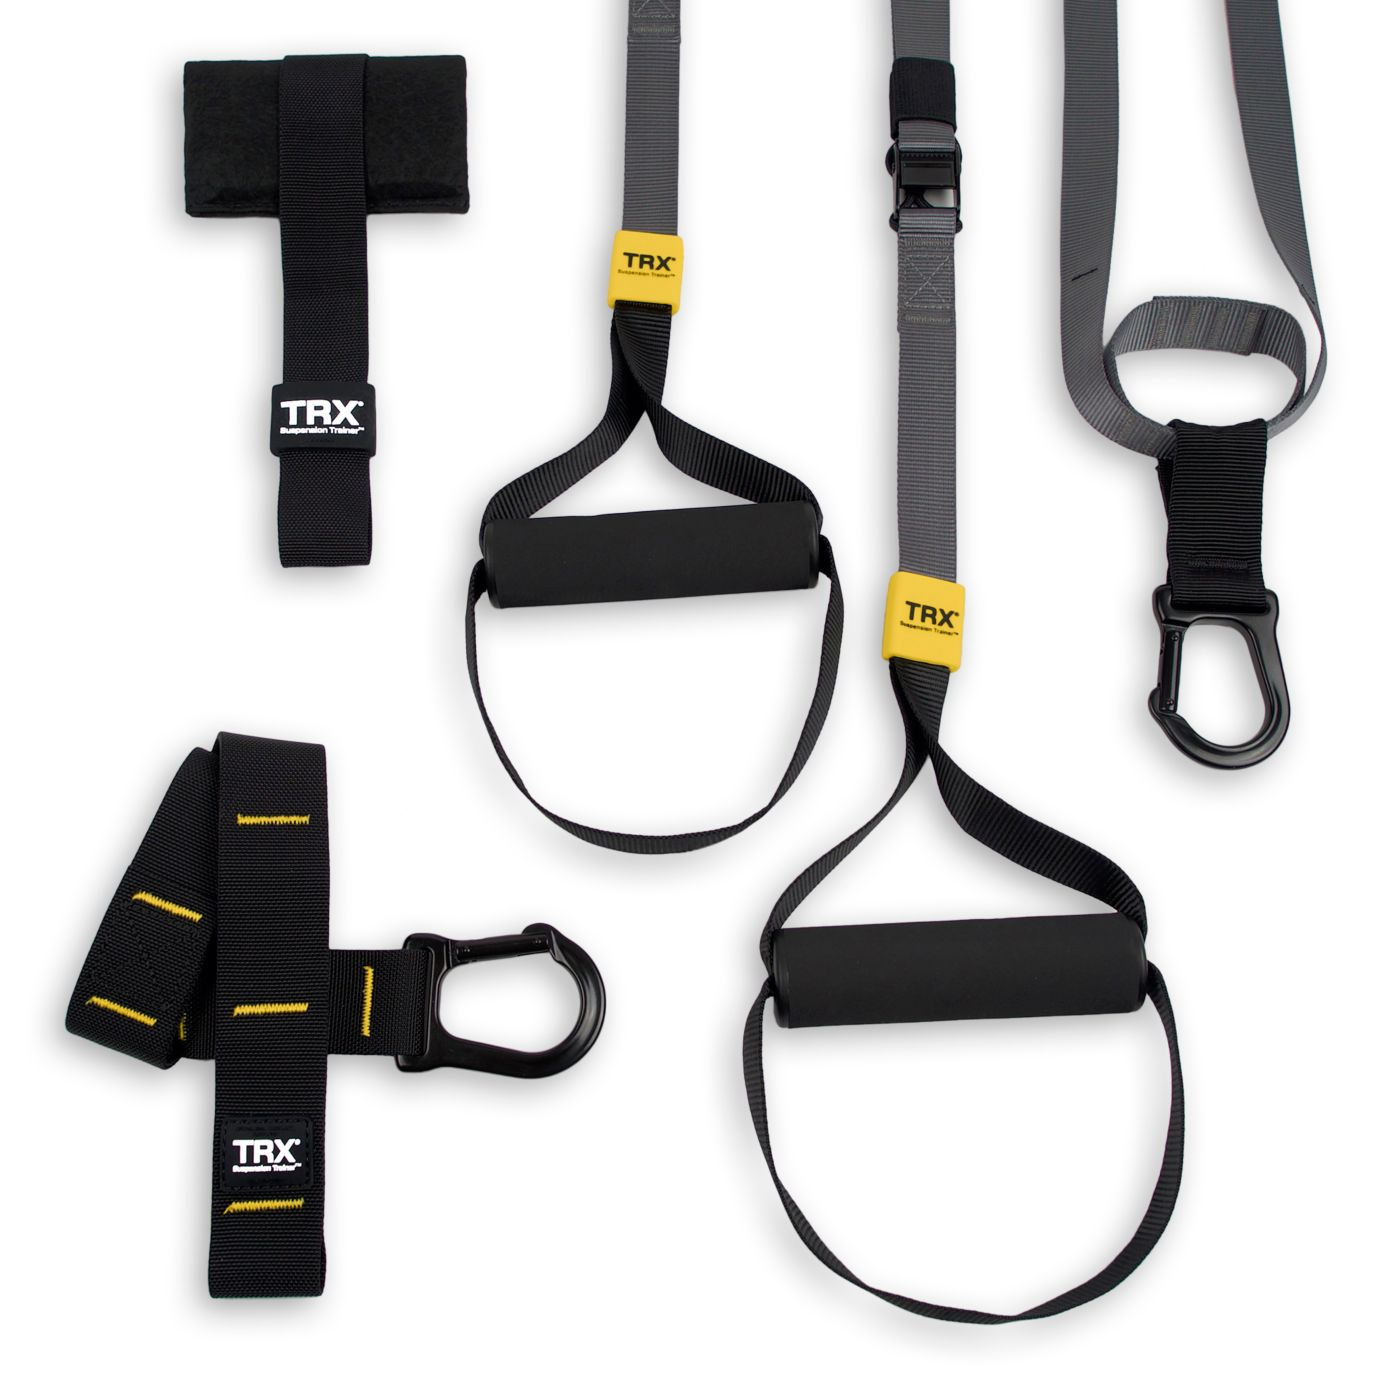 Workout with TRX bands in as little as 15 minutes